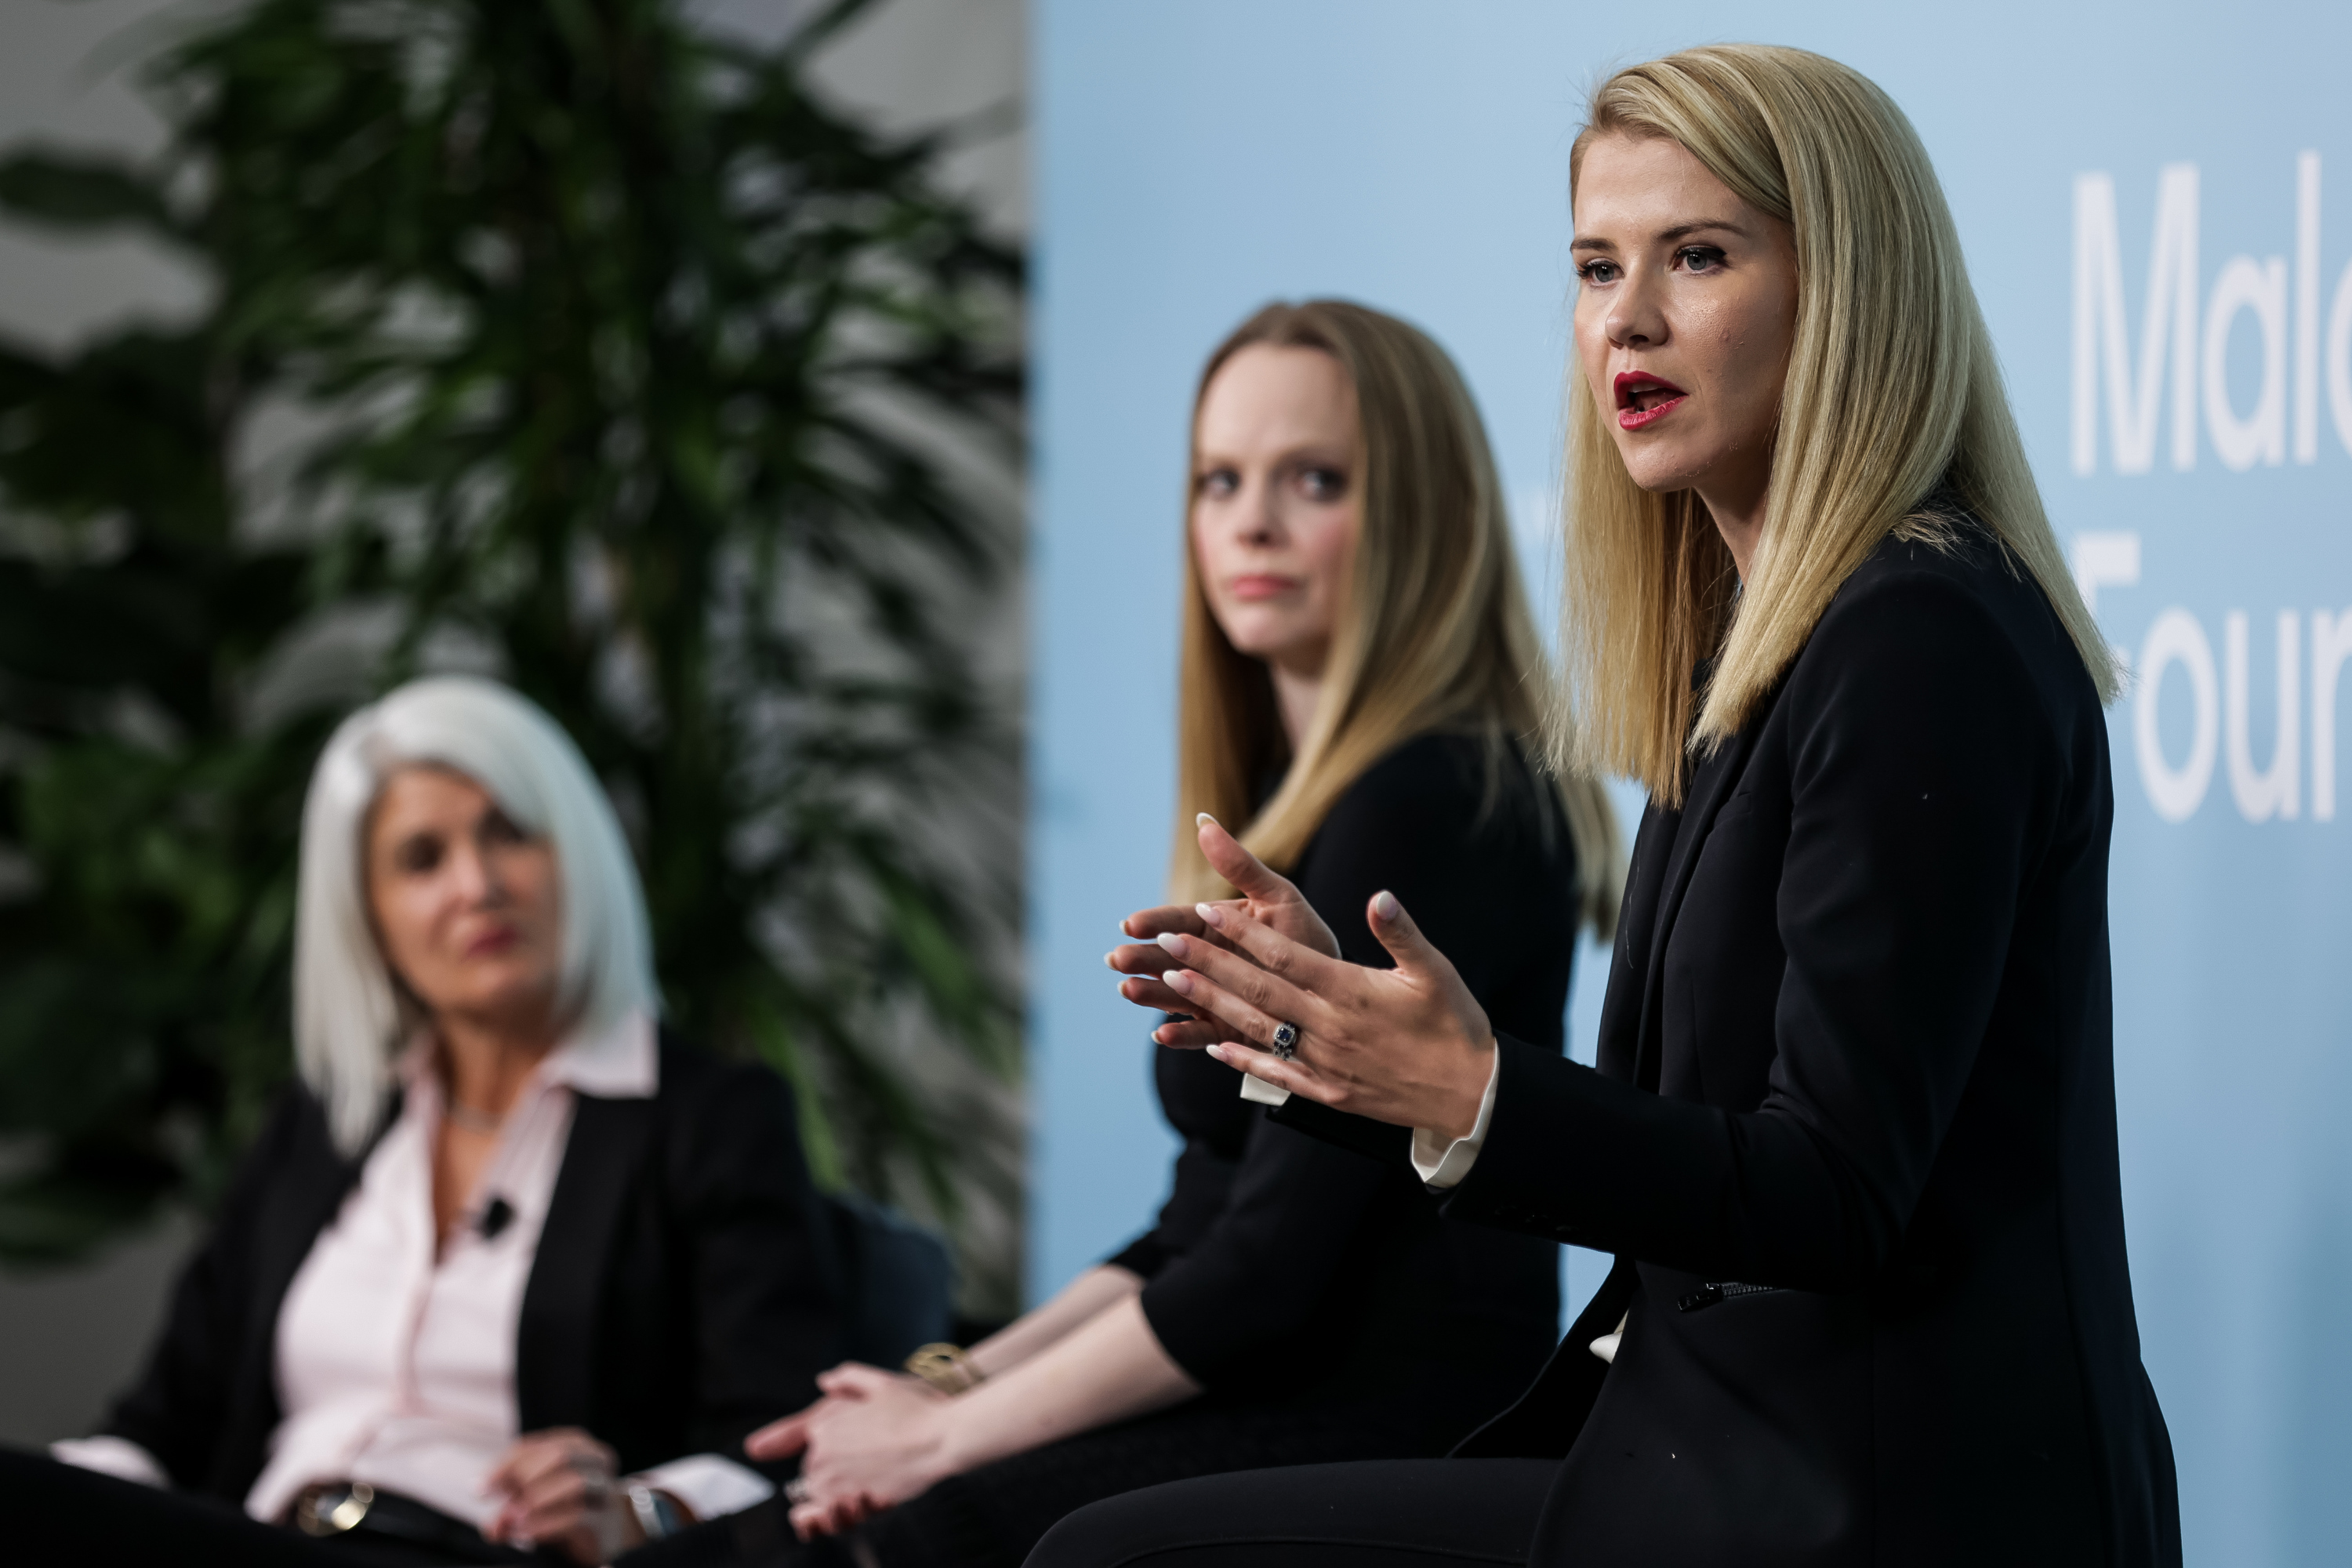 Elizabeth Smart speaks during the Human Trafficking Policy and Education Summit at the Malouf Foundation in Logan on Saturday, April 17, 2021. With smart are Missy Larsen, VP of Philanthropy and Community Impact at doTERRA, and Deondra Brown, co-founder of The Foundation for Survivors of Abuse.